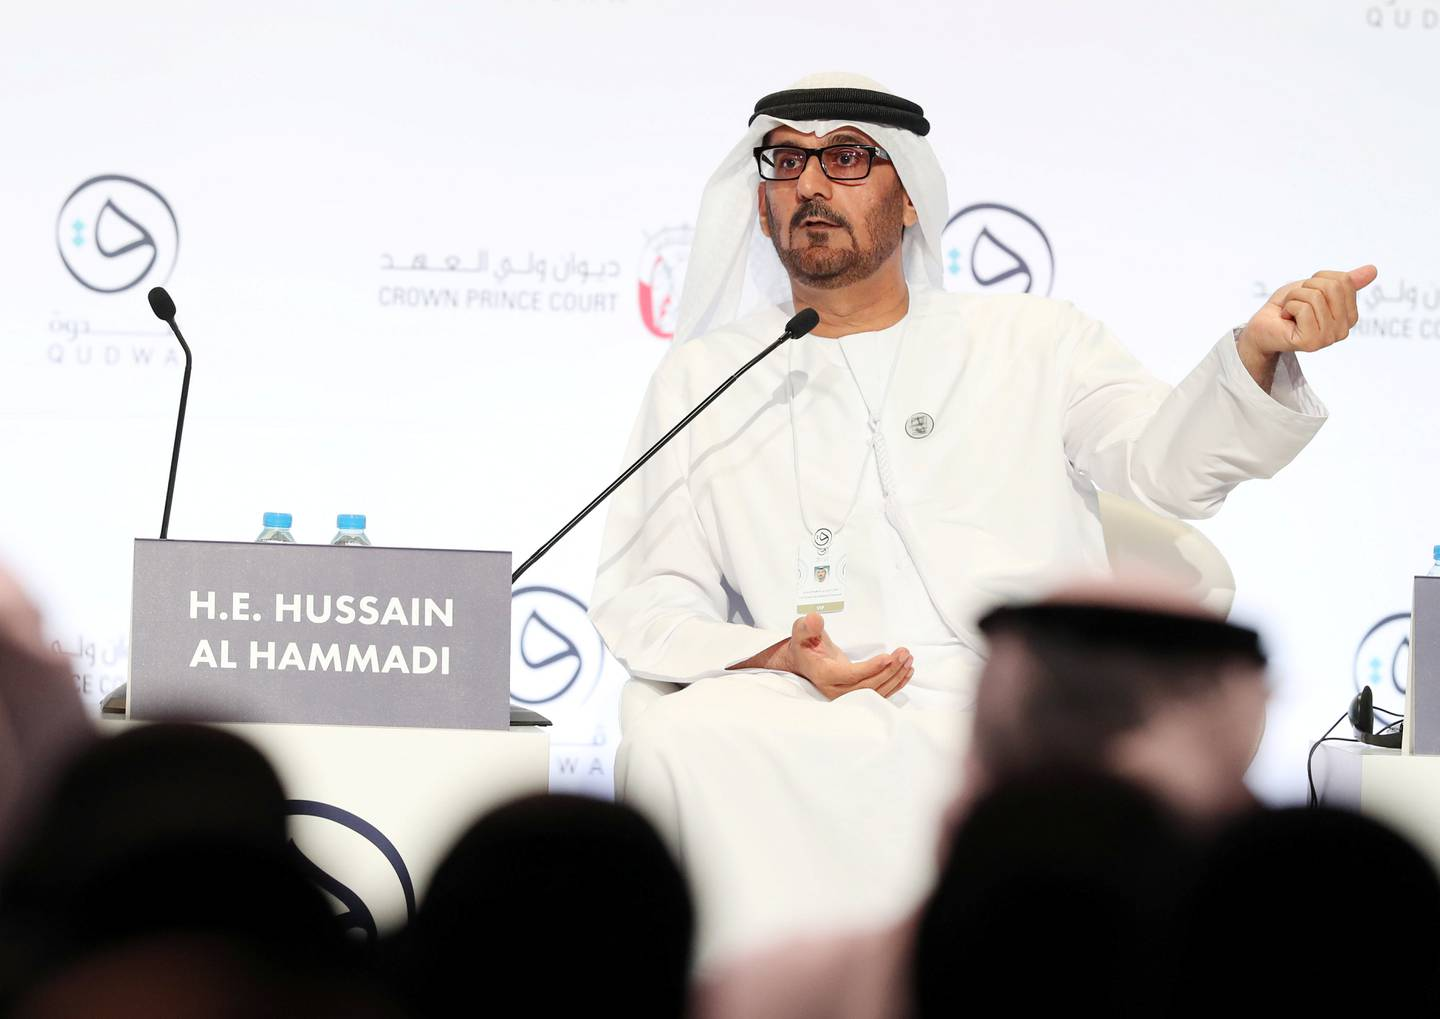 Abu Dhabi, United Arab Emirates - October 06, 2019: H.E. Hussain Ibrahim Al Hammadi, Minister of Education speaks in the opening plenary Teaching for Global Competence. Qudwa is a forum for teachers, by teachers that aims to elevate the teaching profession in the UAE. Sunday the 6th of October 2019. Manarat Al Saadiyat, Abu Dhabi. Chris Whiteoak / The National